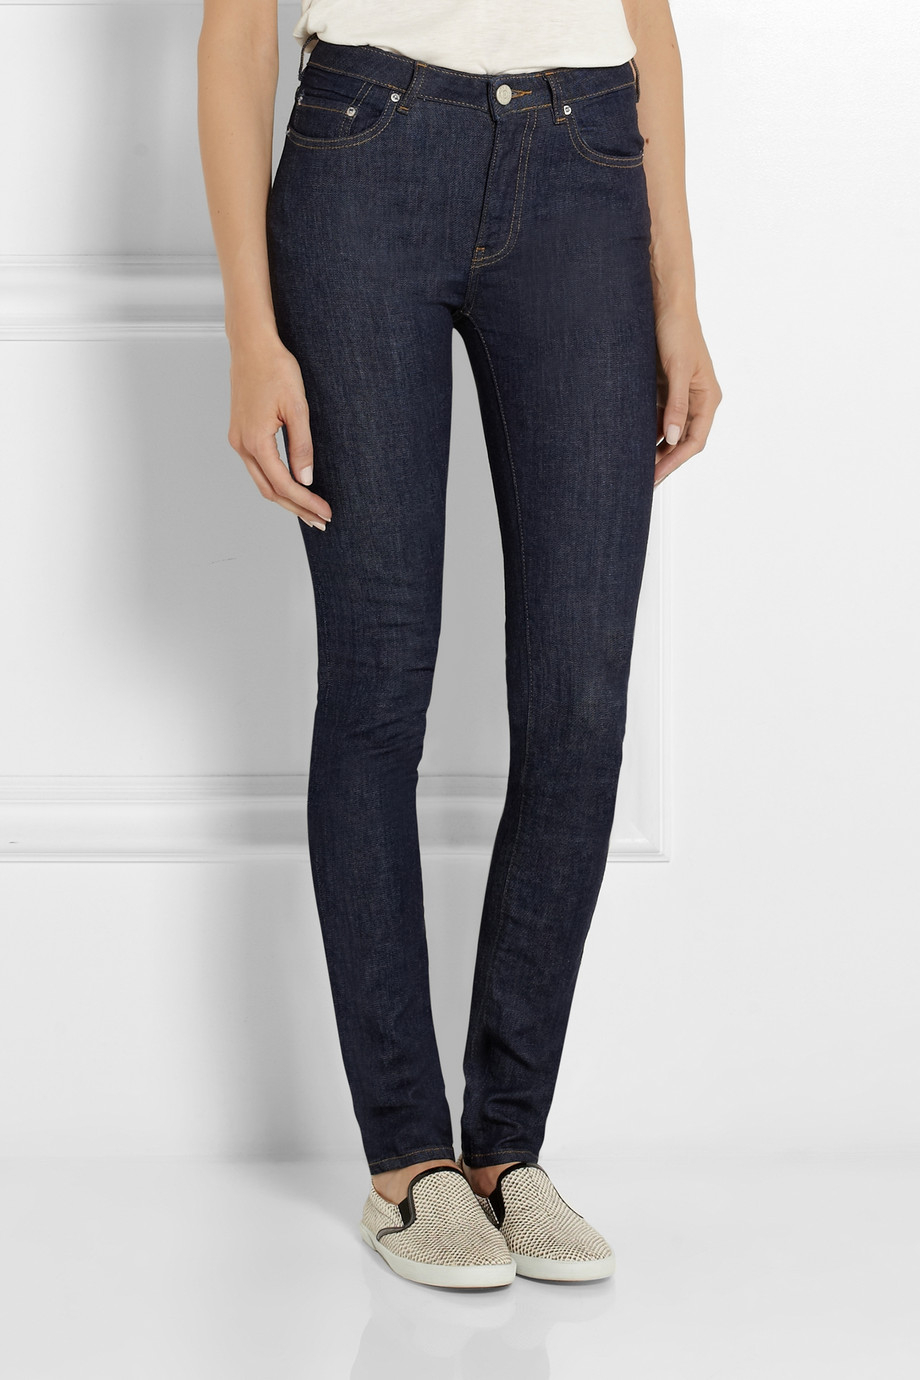 acne studios pin raw reform high rise skinny jeans in blue lyst. Black Bedroom Furniture Sets. Home Design Ideas